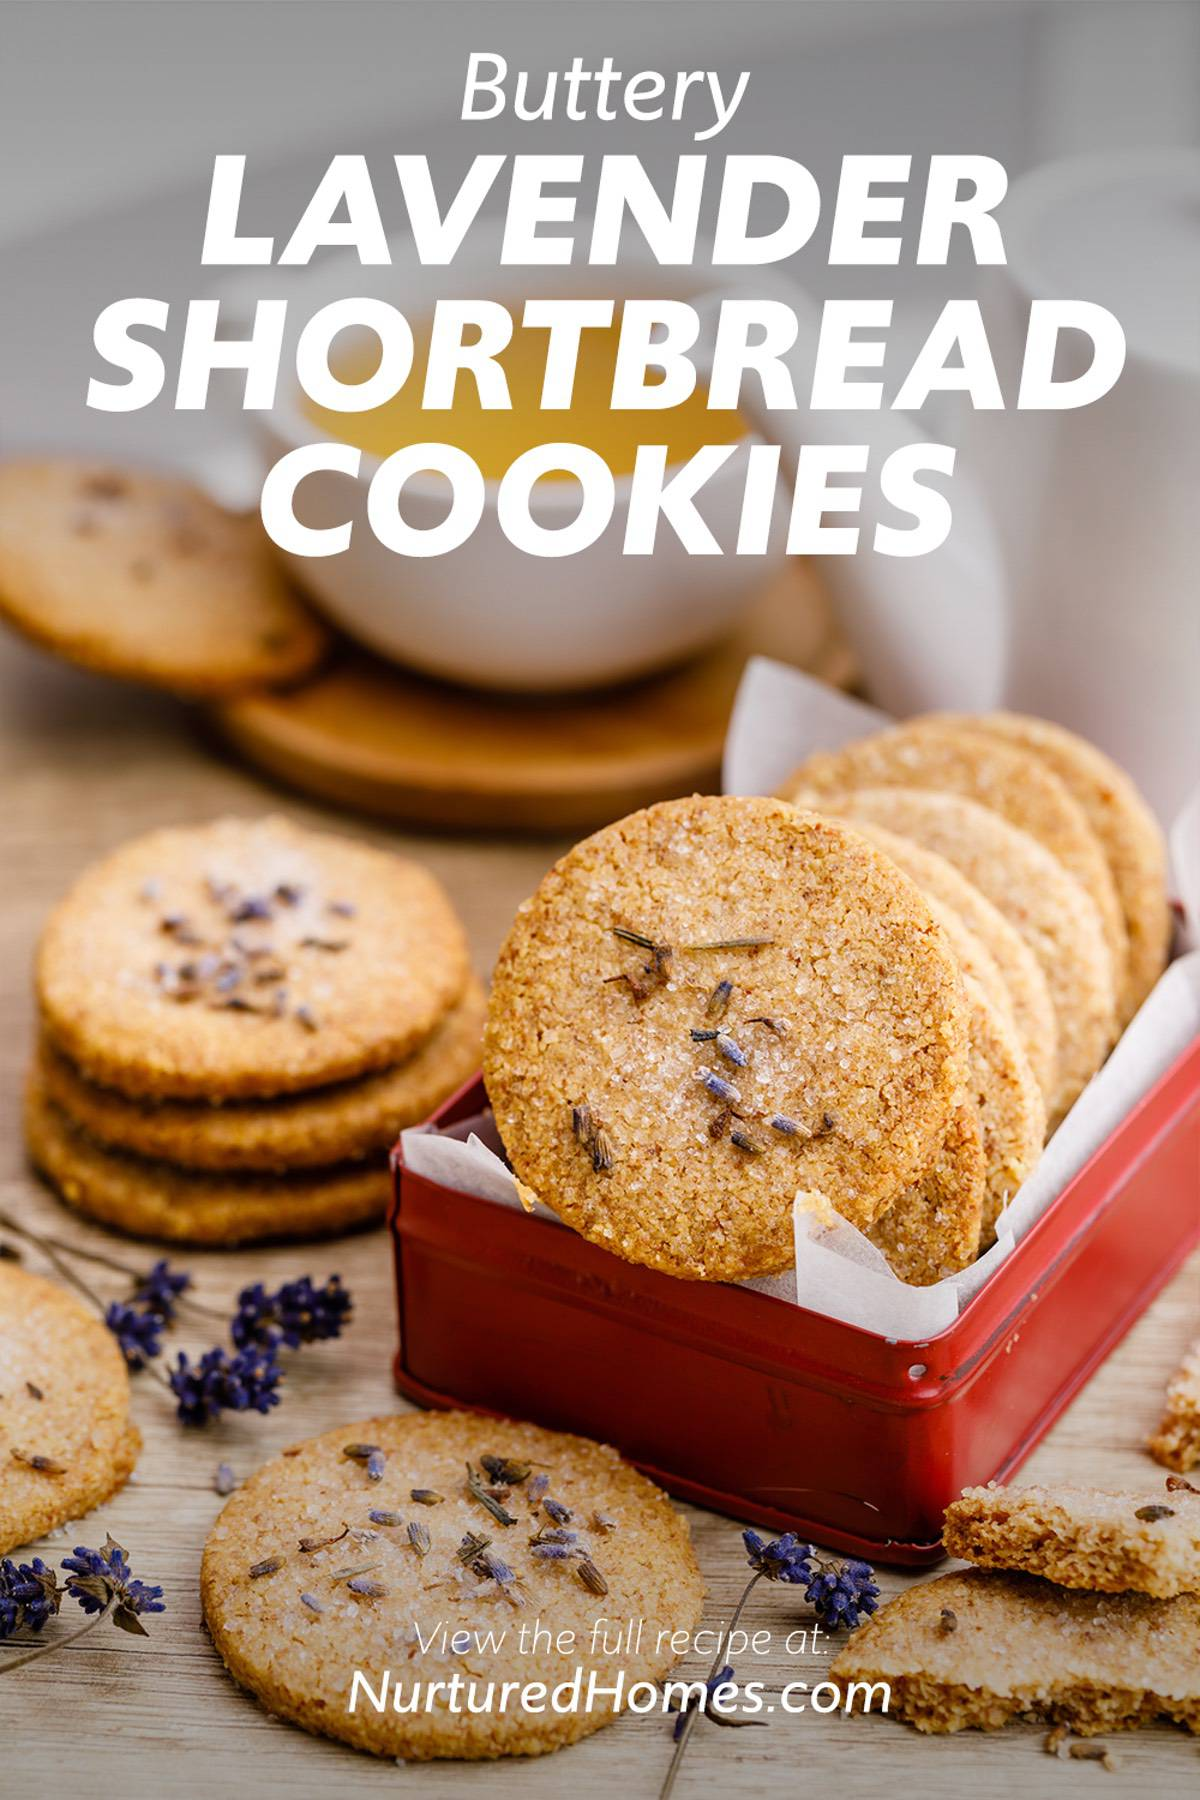 Buttery Lavender Shortbread Cookies